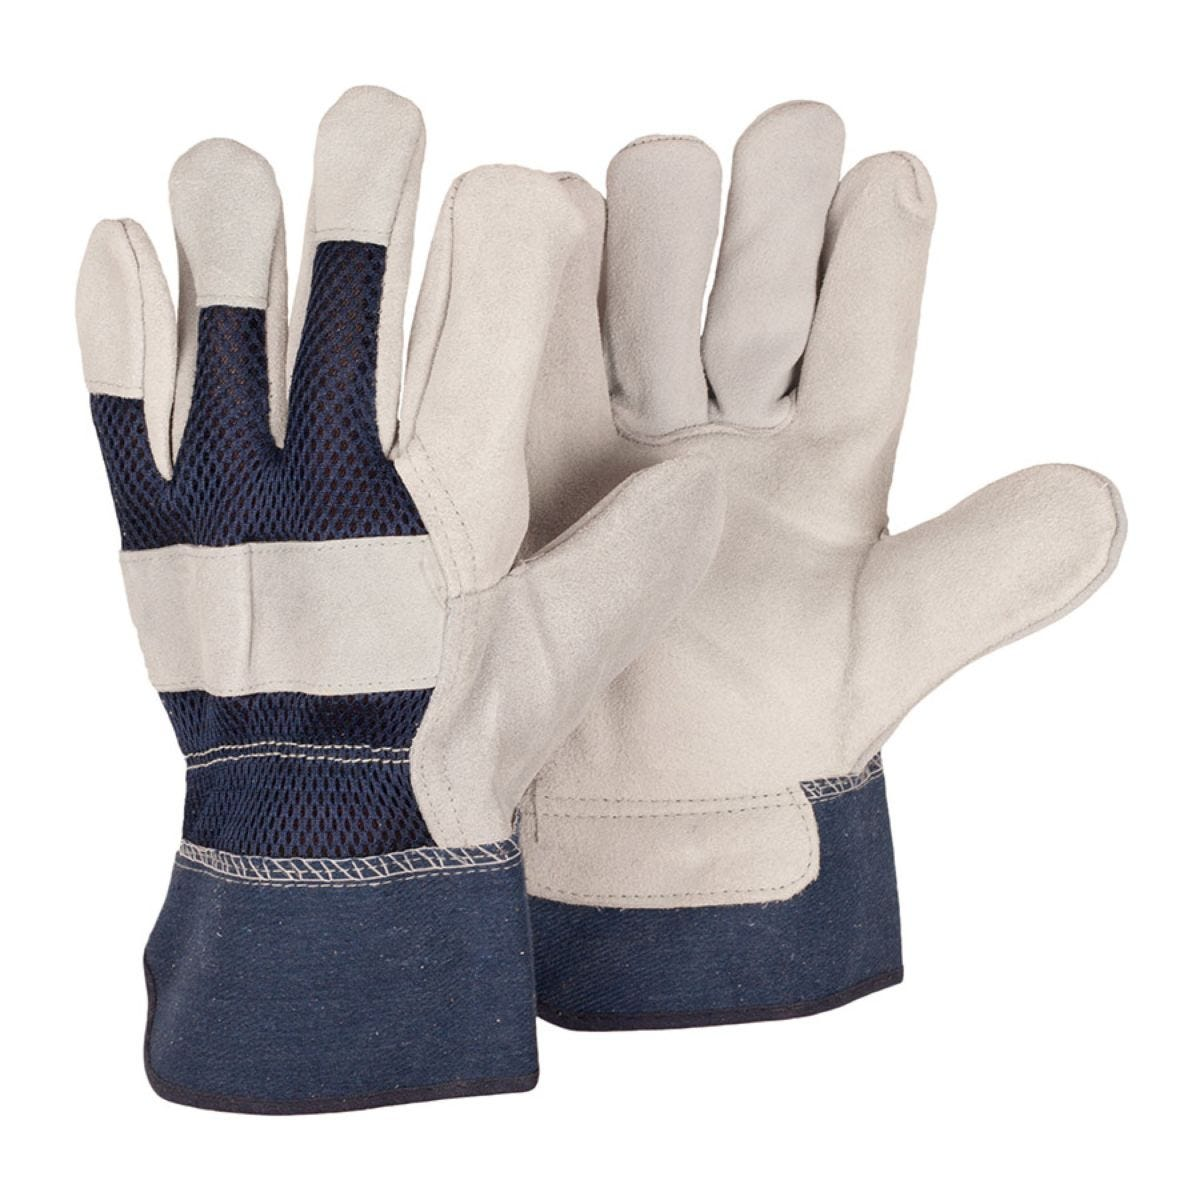 Briers Rigger Gloves (Large) - Twin Pack